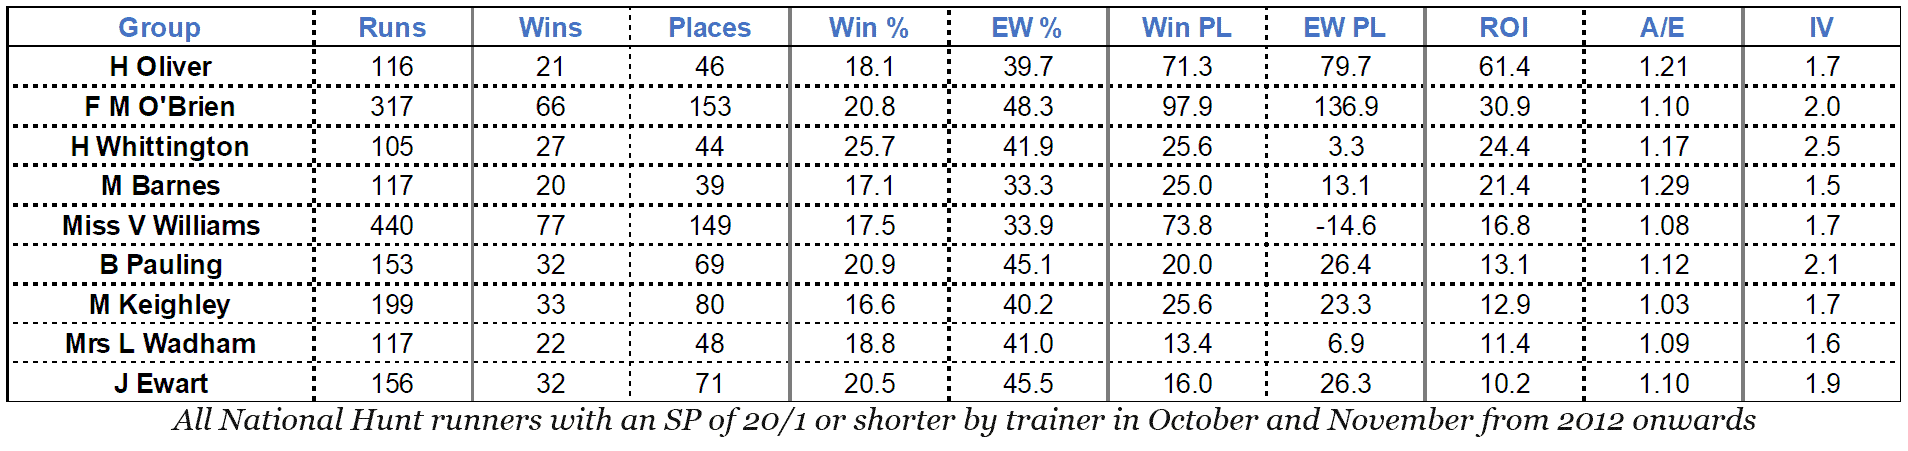 All National Hunt runners with an SP of 20/1 or shorter by trainer in October and November from 2012 onwards